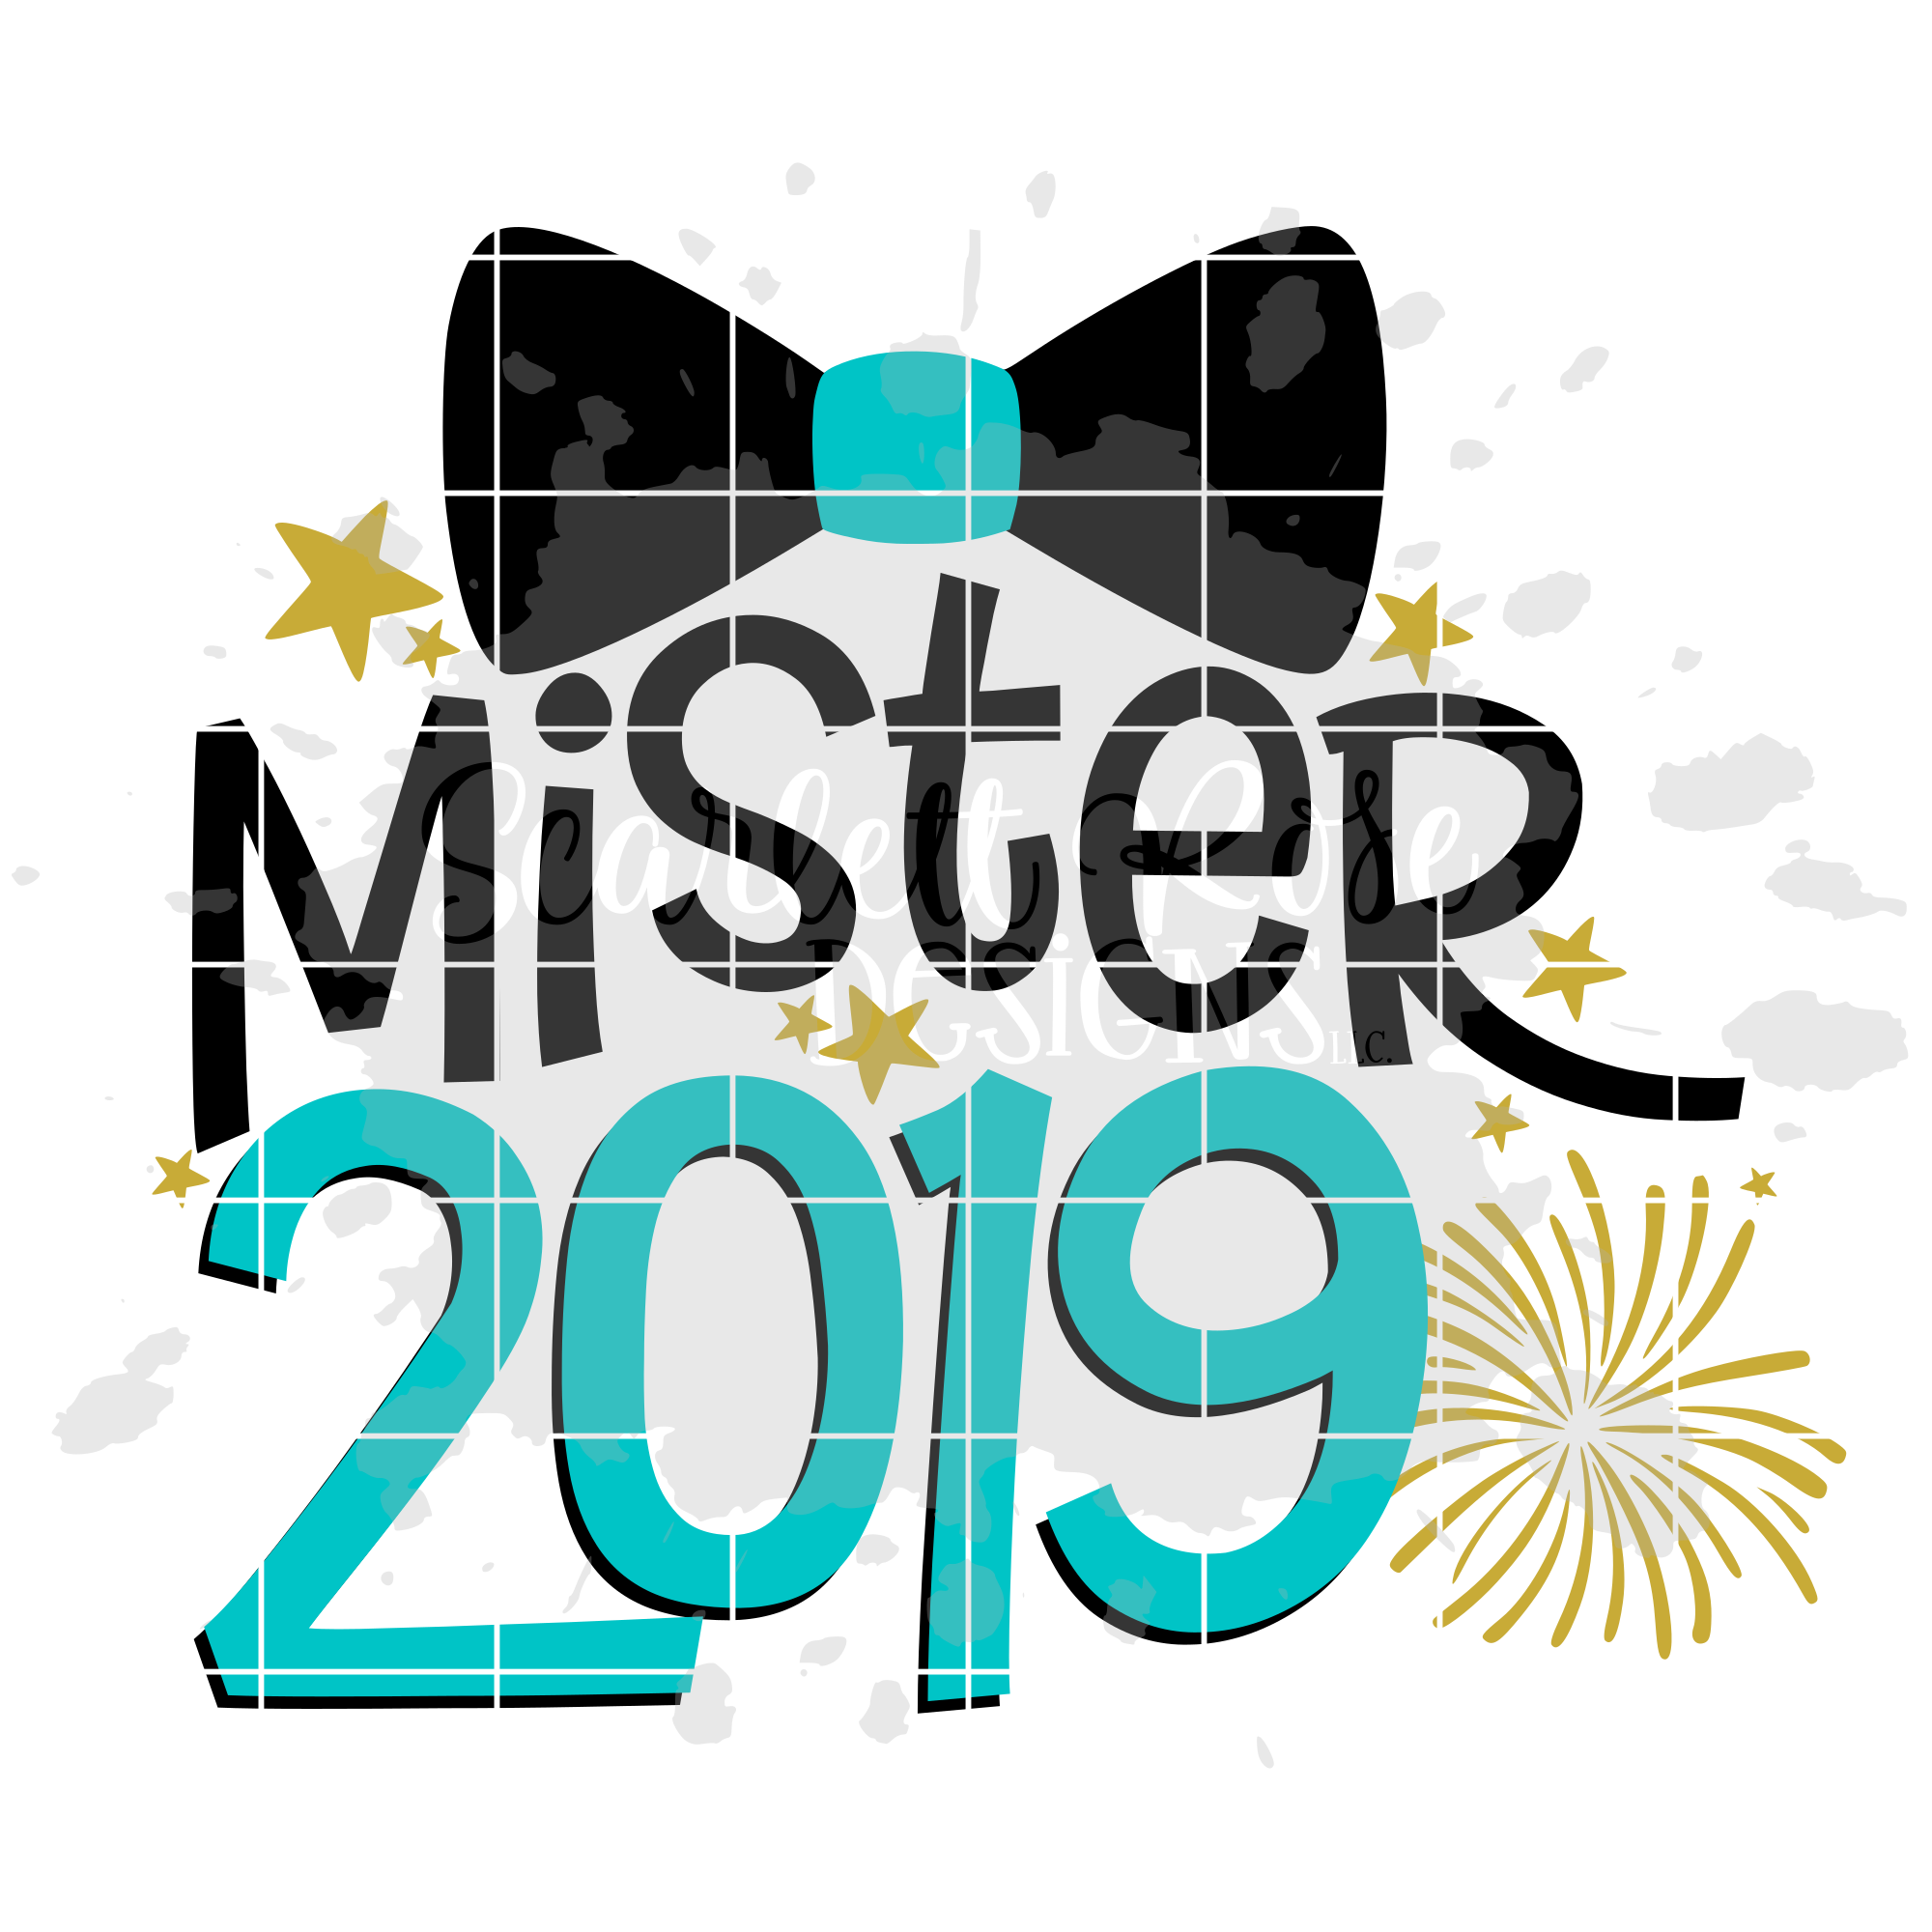 Mister 2019 - New Year's SVG example image 2